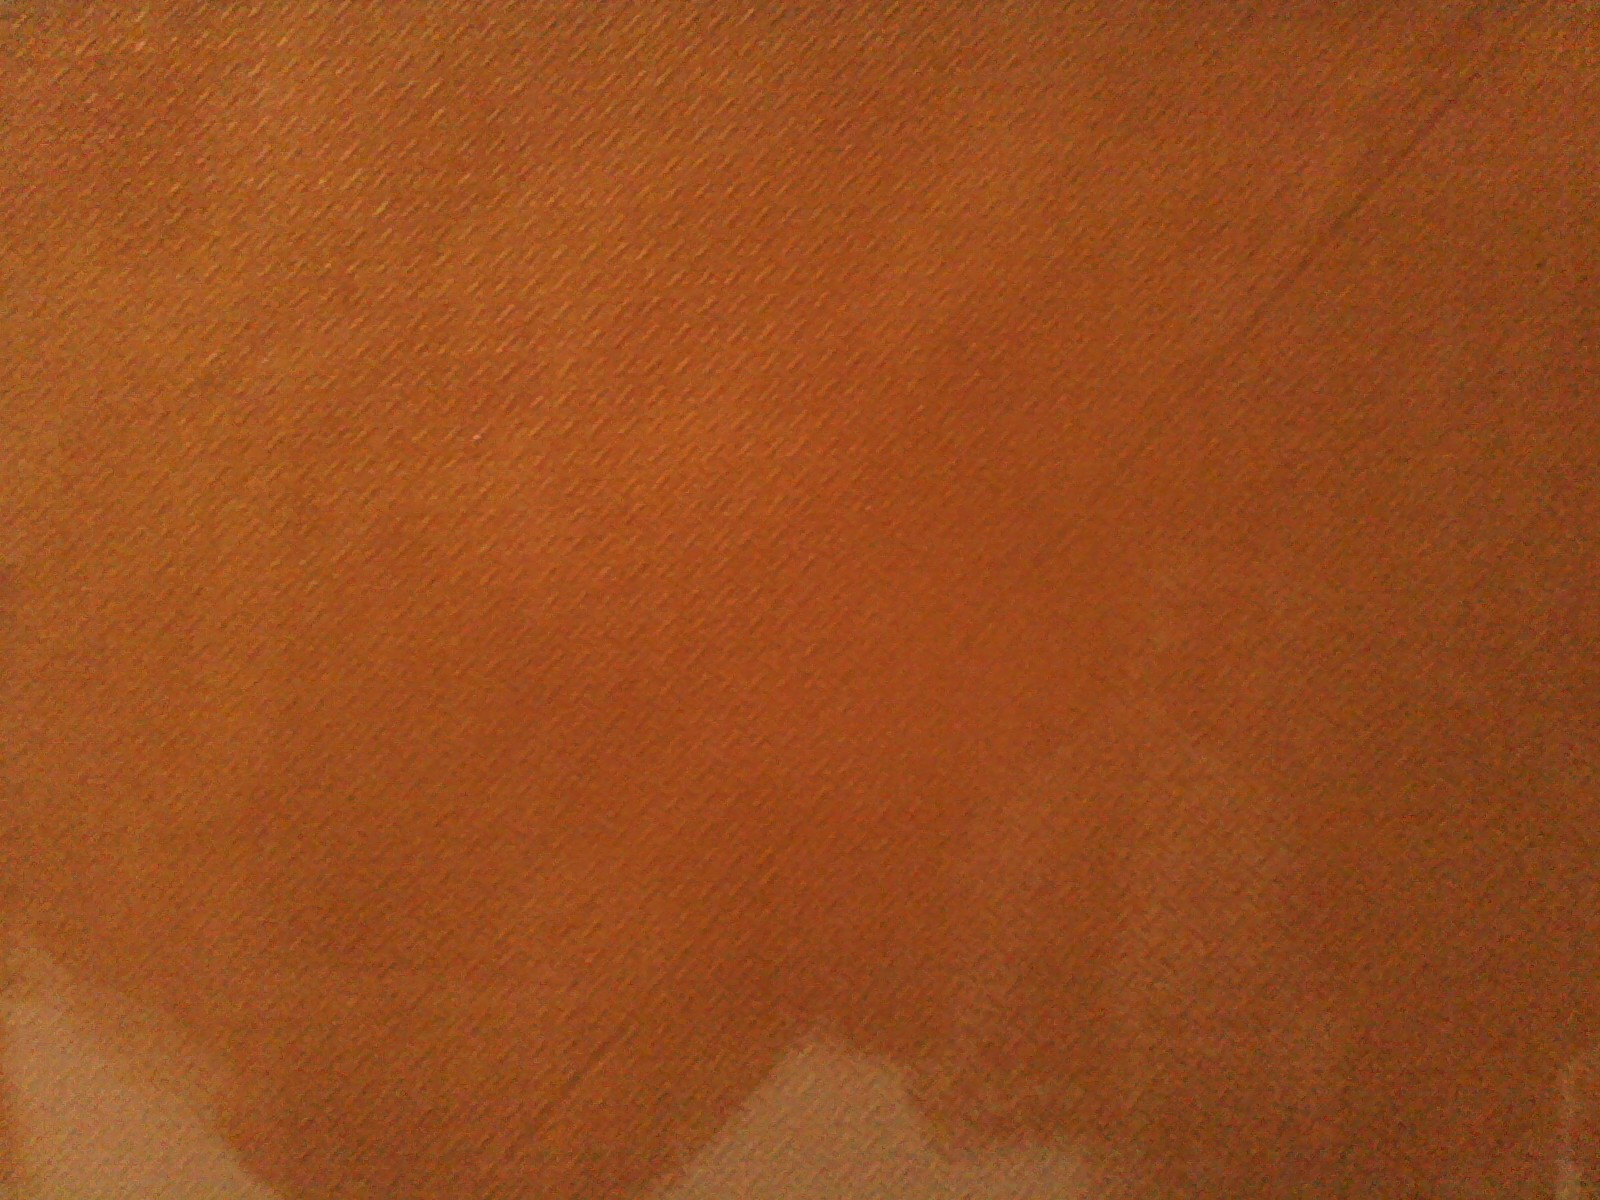 paint a solid coat of yellow ochre. Then a 'wash' of raw sienna ...